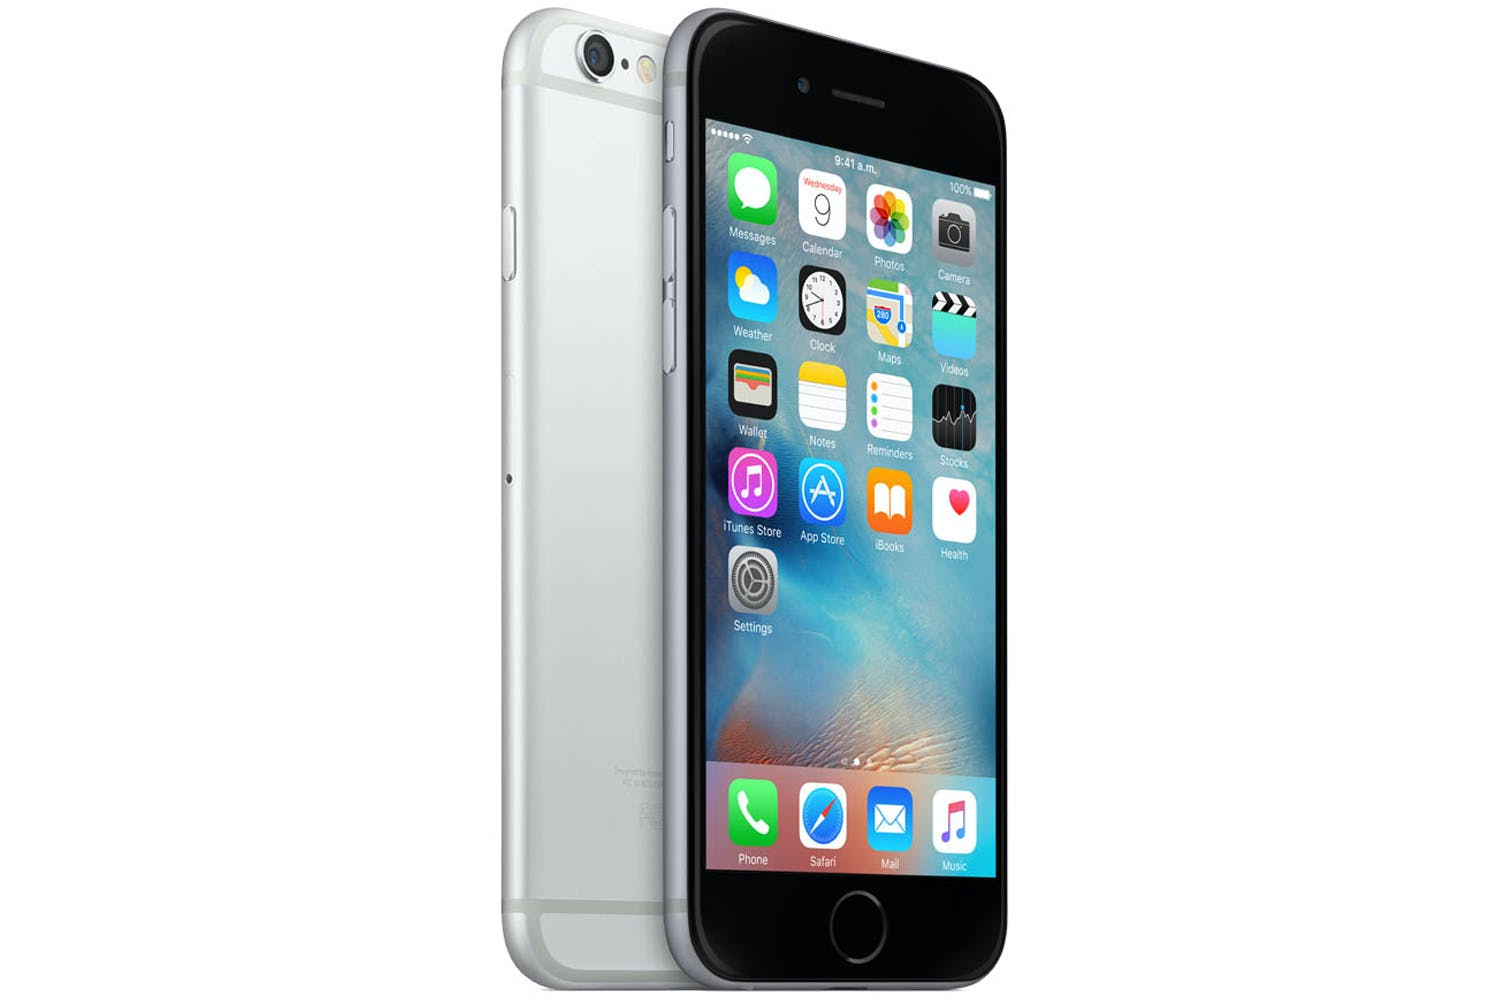 mint premium iphone 6 16gb space grey ireland. Black Bedroom Furniture Sets. Home Design Ideas